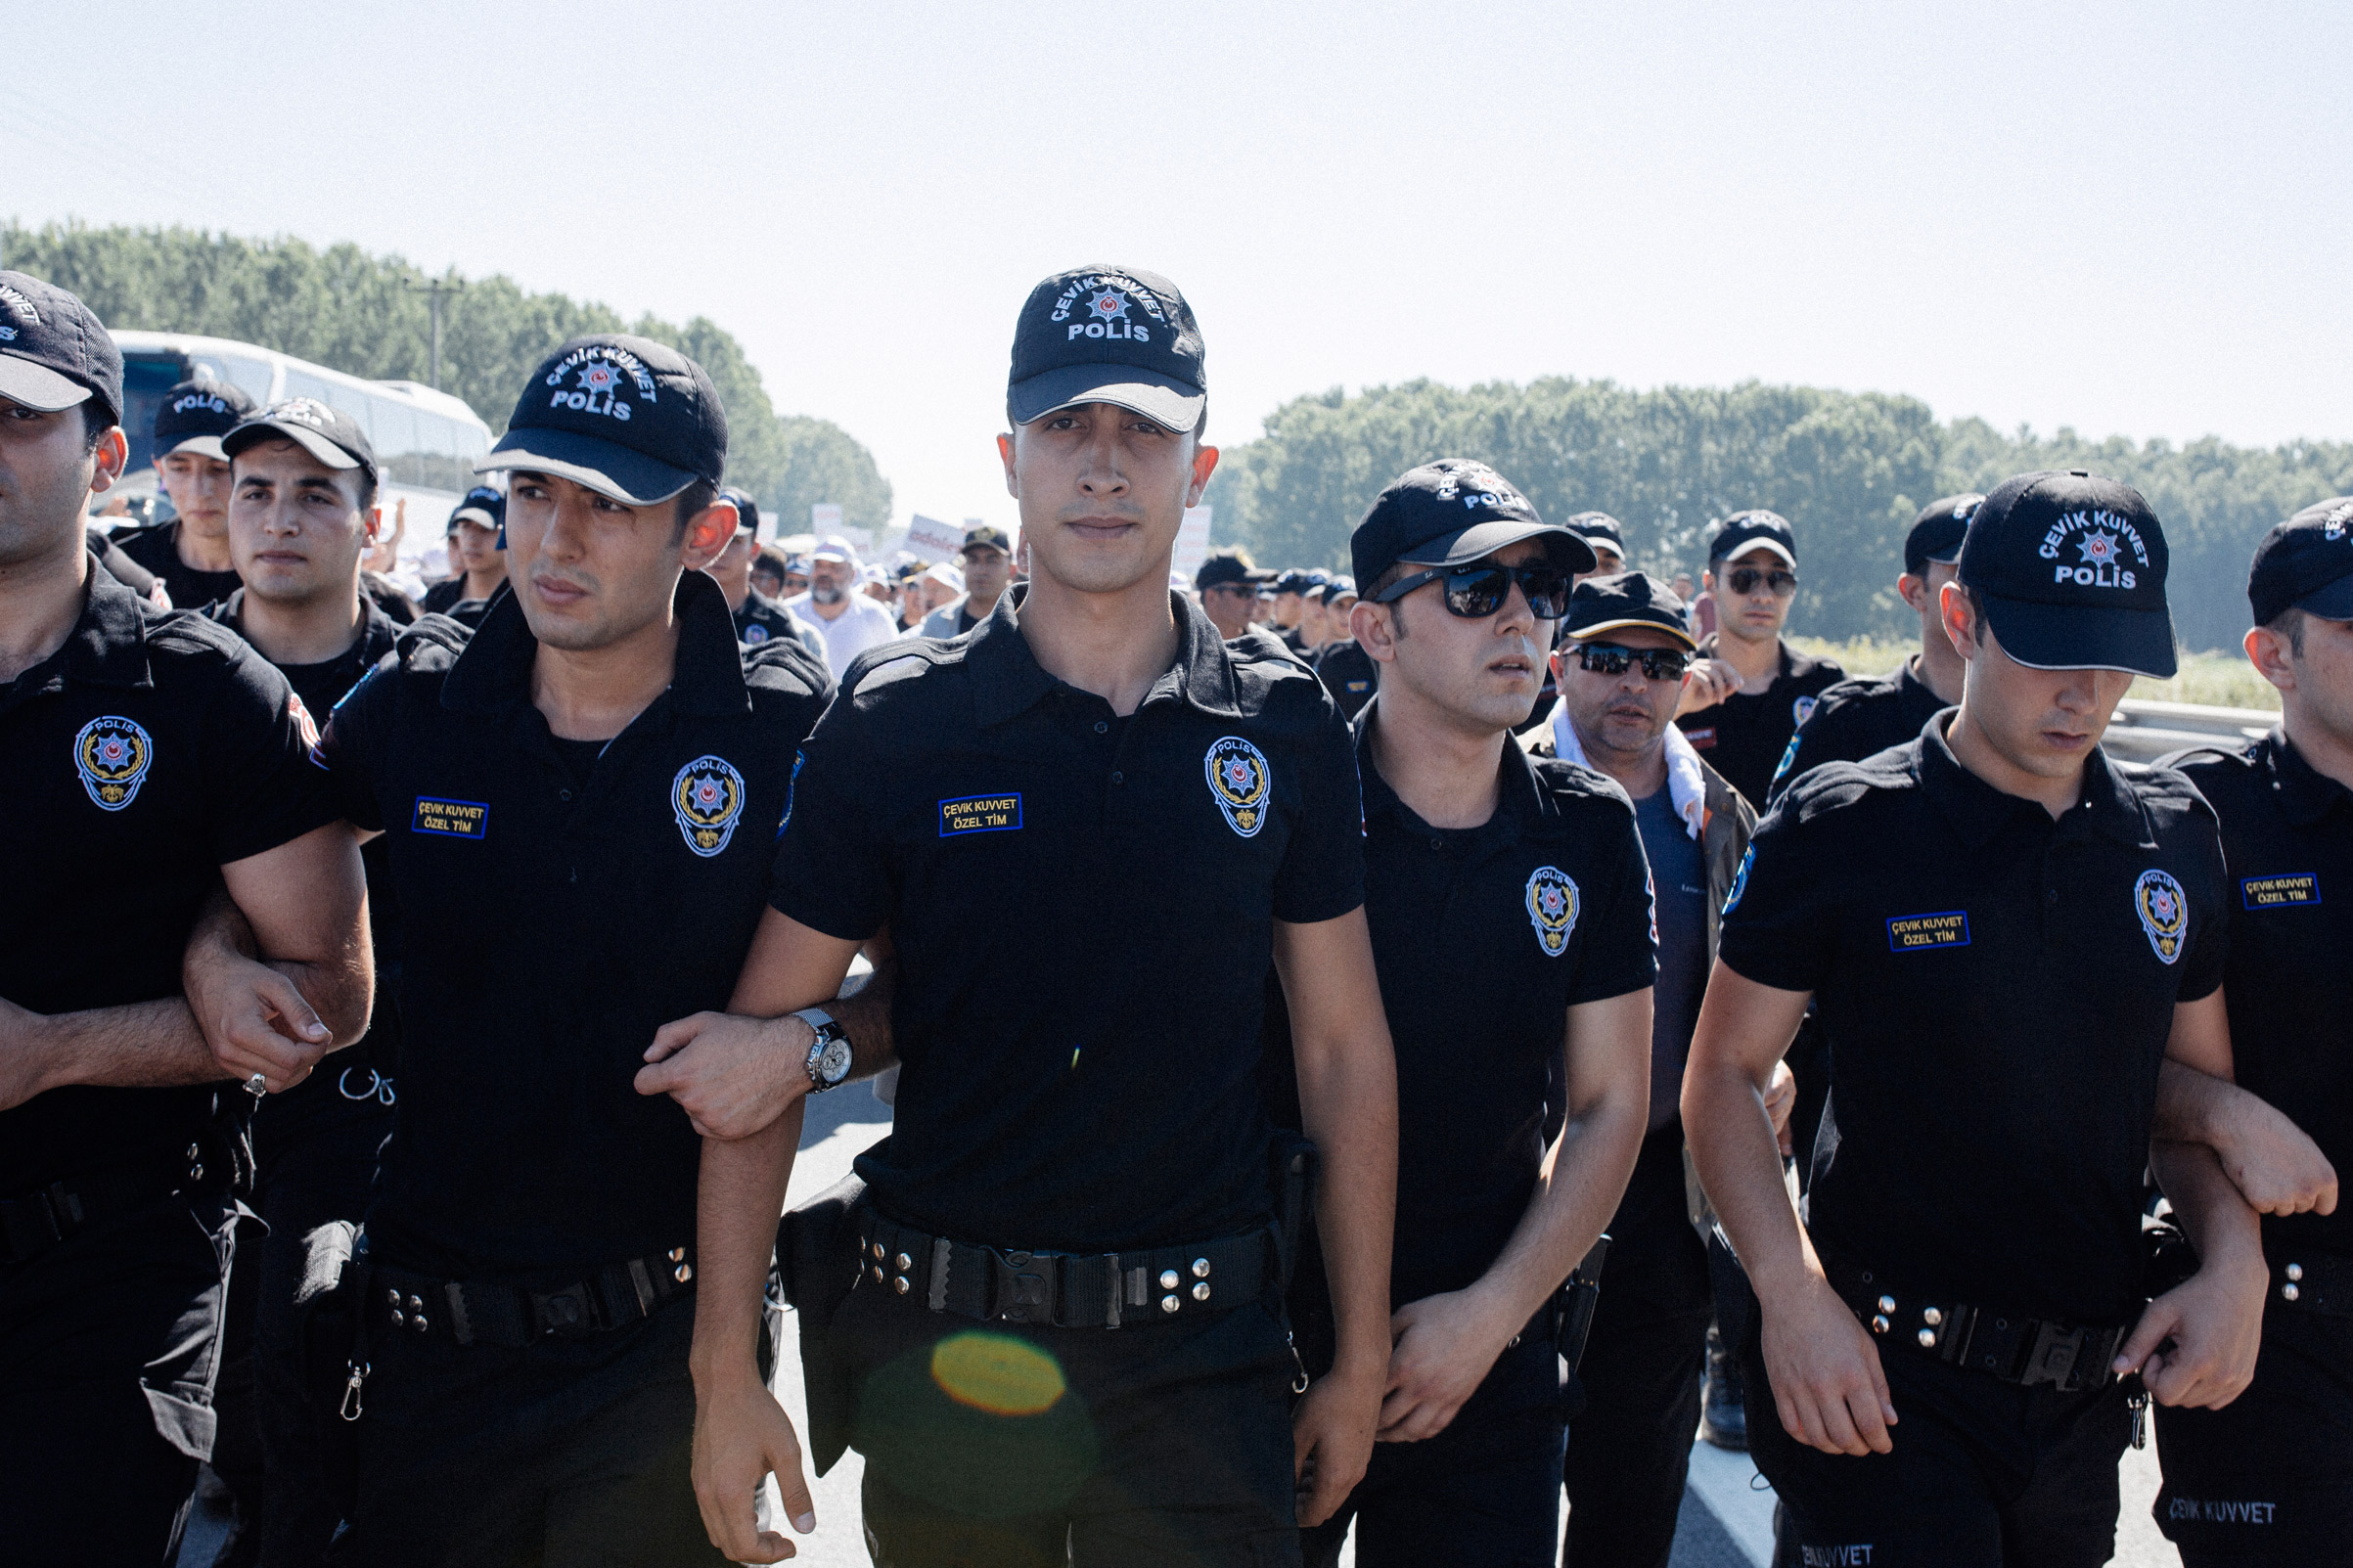 """Turkish police escort protestors during the Justice March in Hendek, Turkey, July 1, 2017. The leader of the march, Turkey's main opposition party CHP (Republican People's Party) leader Kemal Kilicdaroglu received threats after starting the walk June 15, 2017 in Ankara. President Erdogan accused Kilicdaroglu of staging """"protests to protect terrorists and those who support terrorism.   Responding to Erdogan's accusations, Kilicdaroglu said they were """"fitting for a dictator""""."""